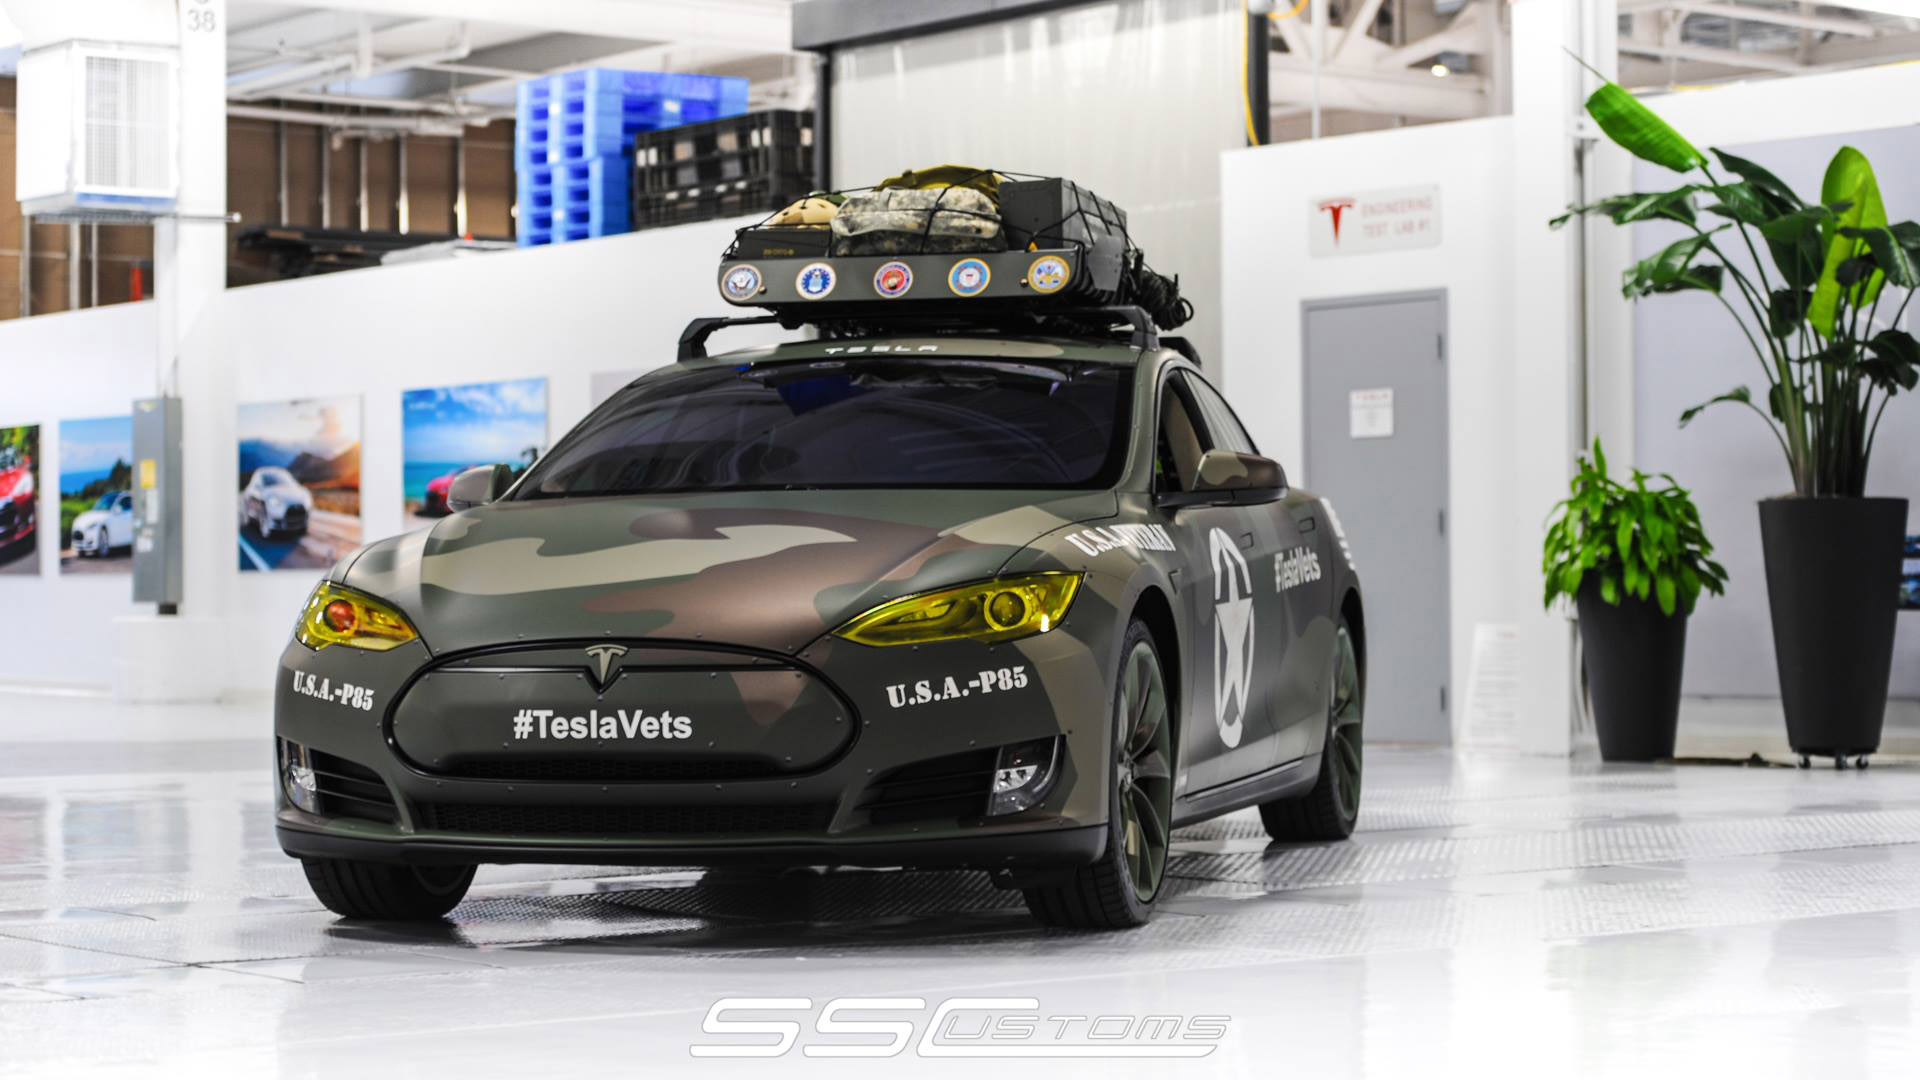 Ss Customs And Tesla Create One Off Teslavets To Celebrate